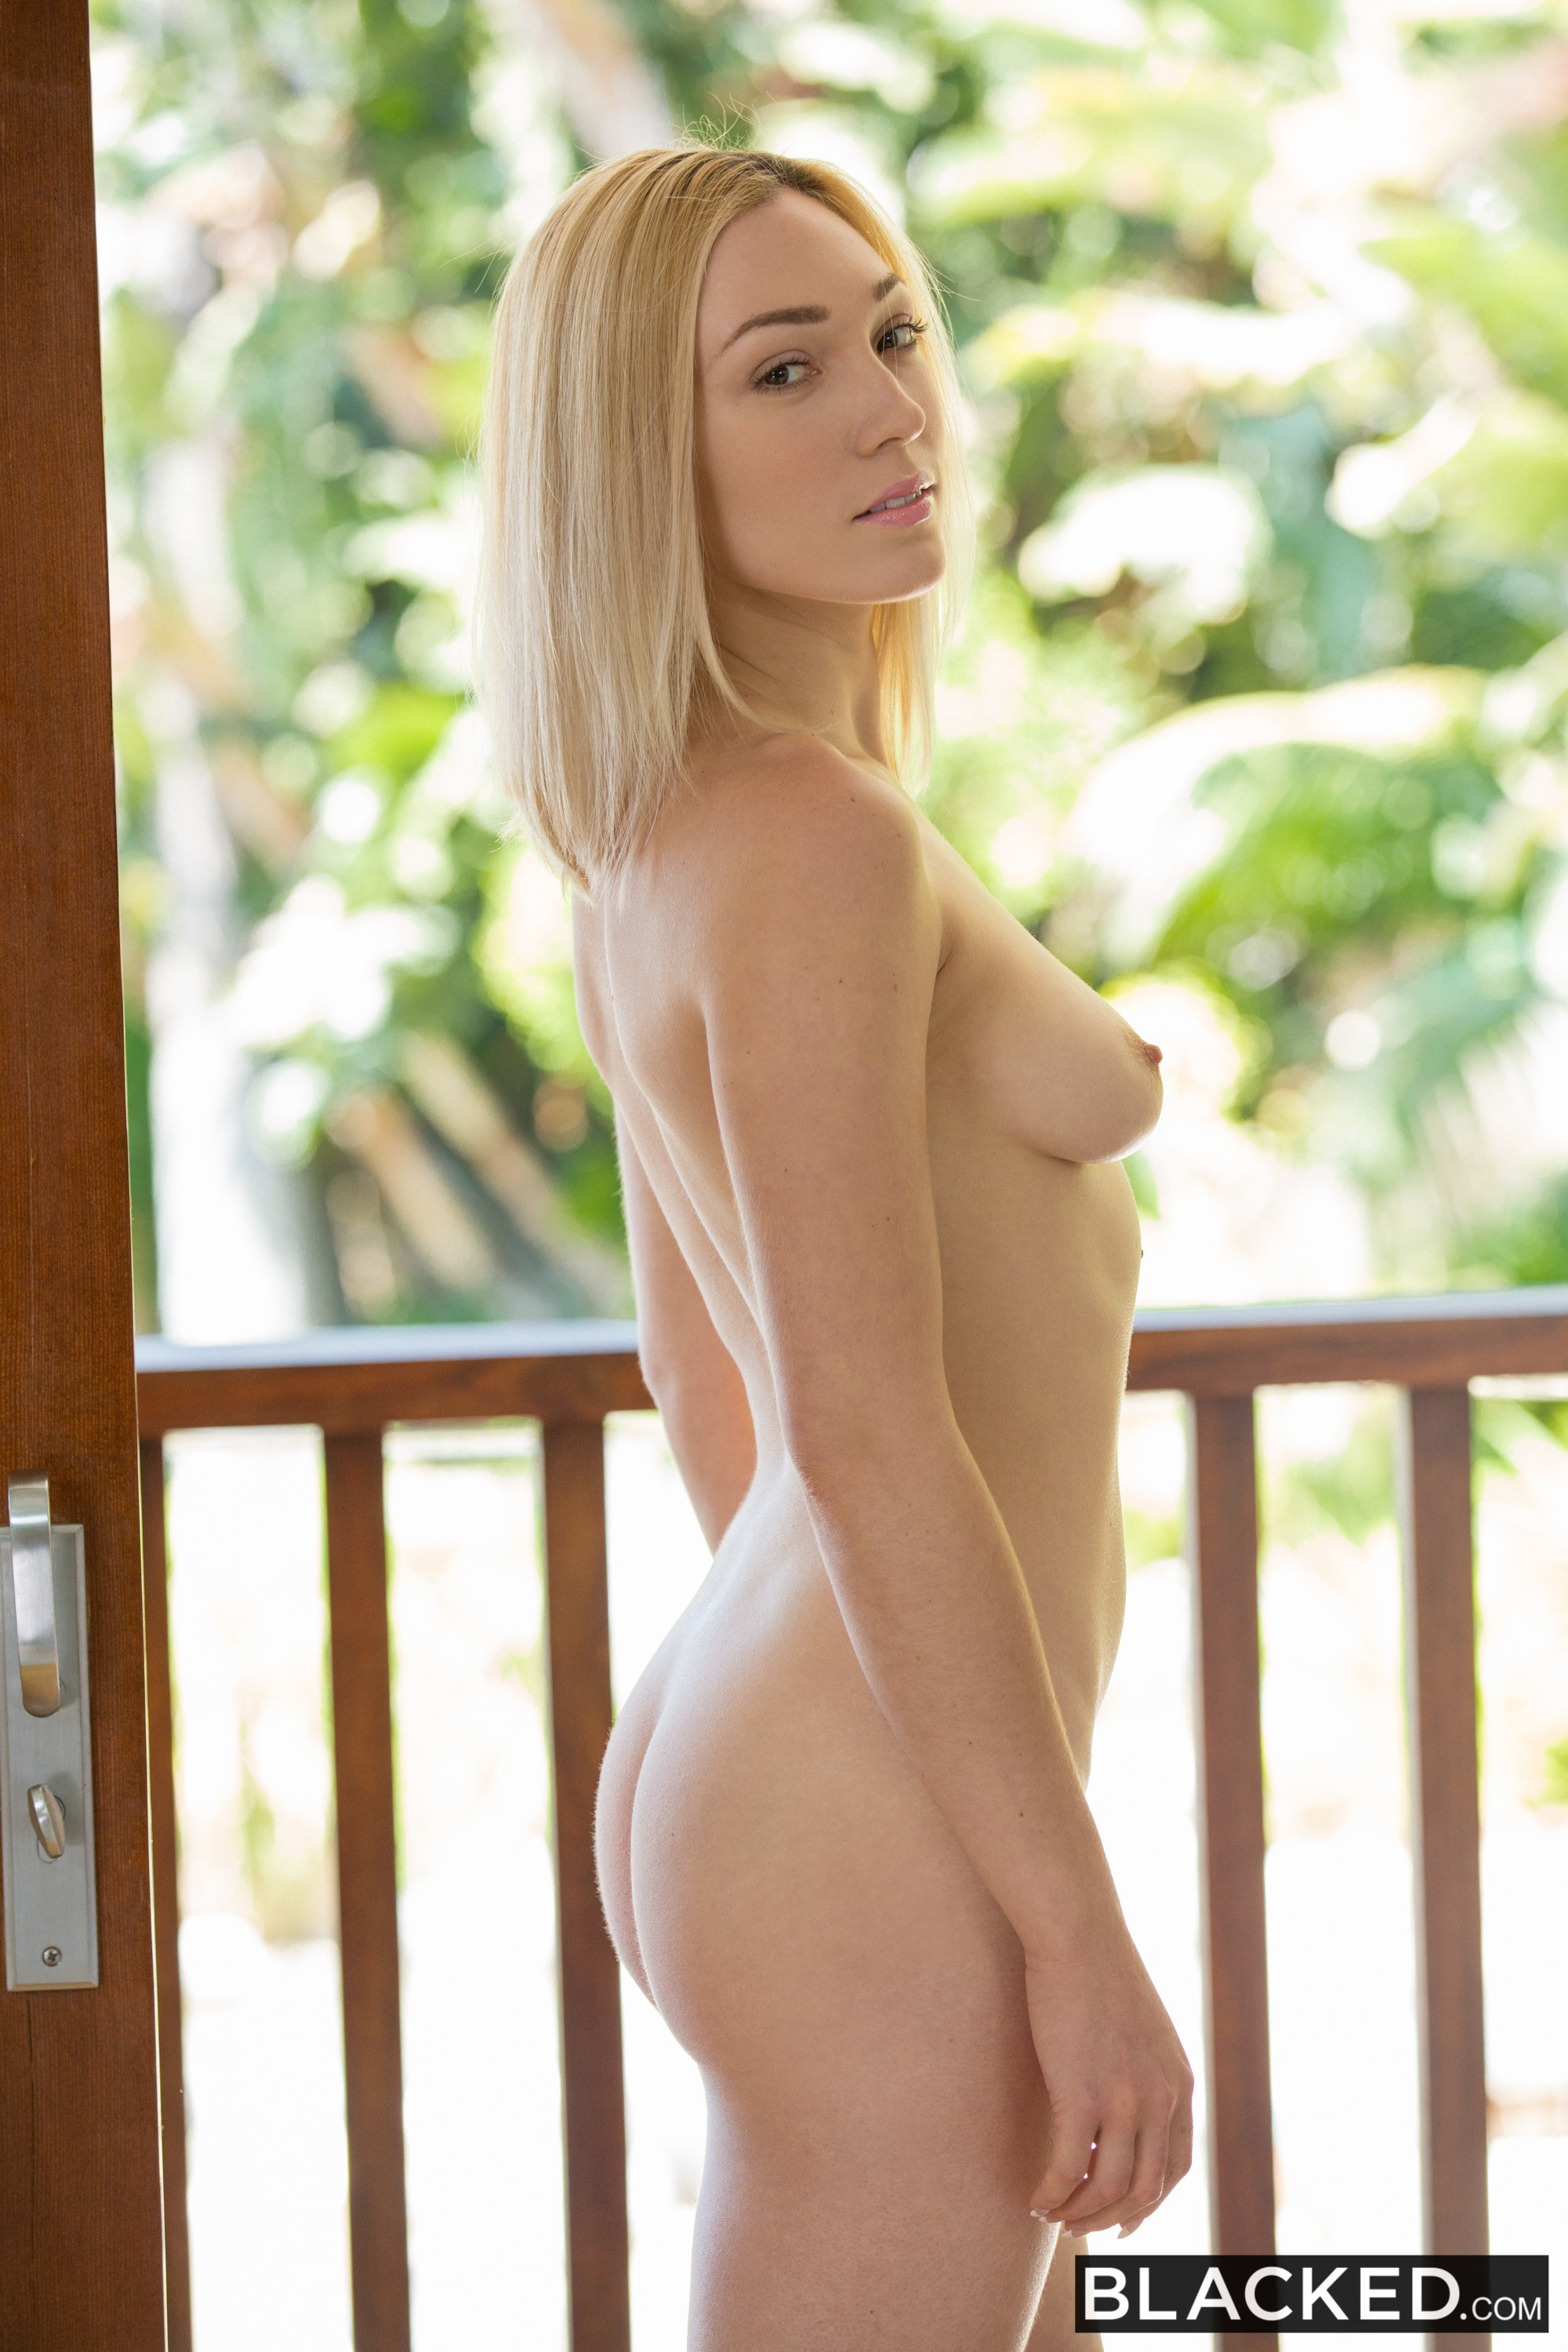 lily-labeau-blonde-nude-black-lingerie-blacked-09